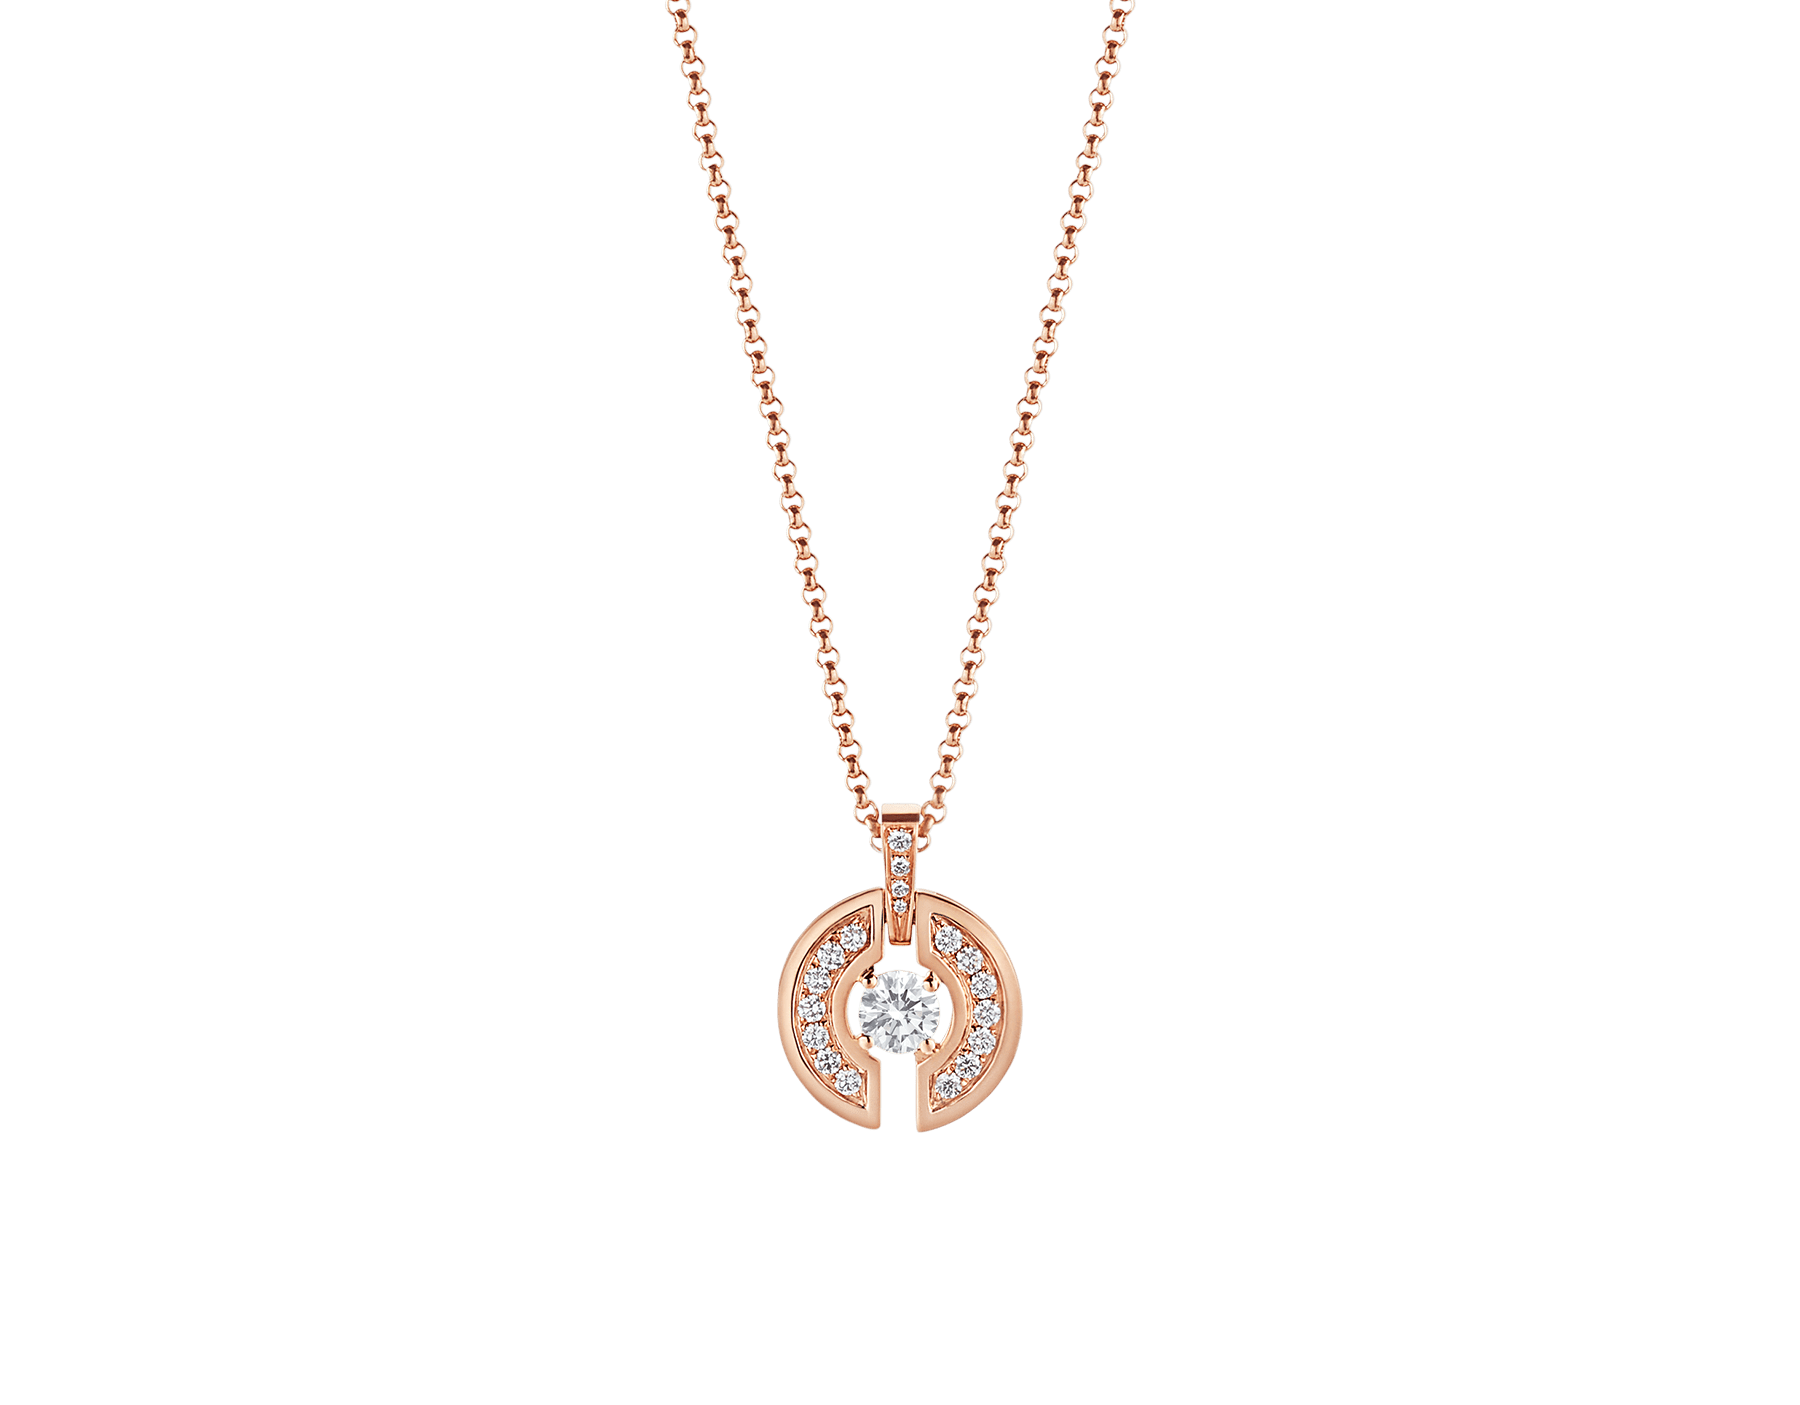 Parentesi necklace with 18 kt rose gold chain and pendant, set with a central diamond and pavé diamonds. 354606 image 1